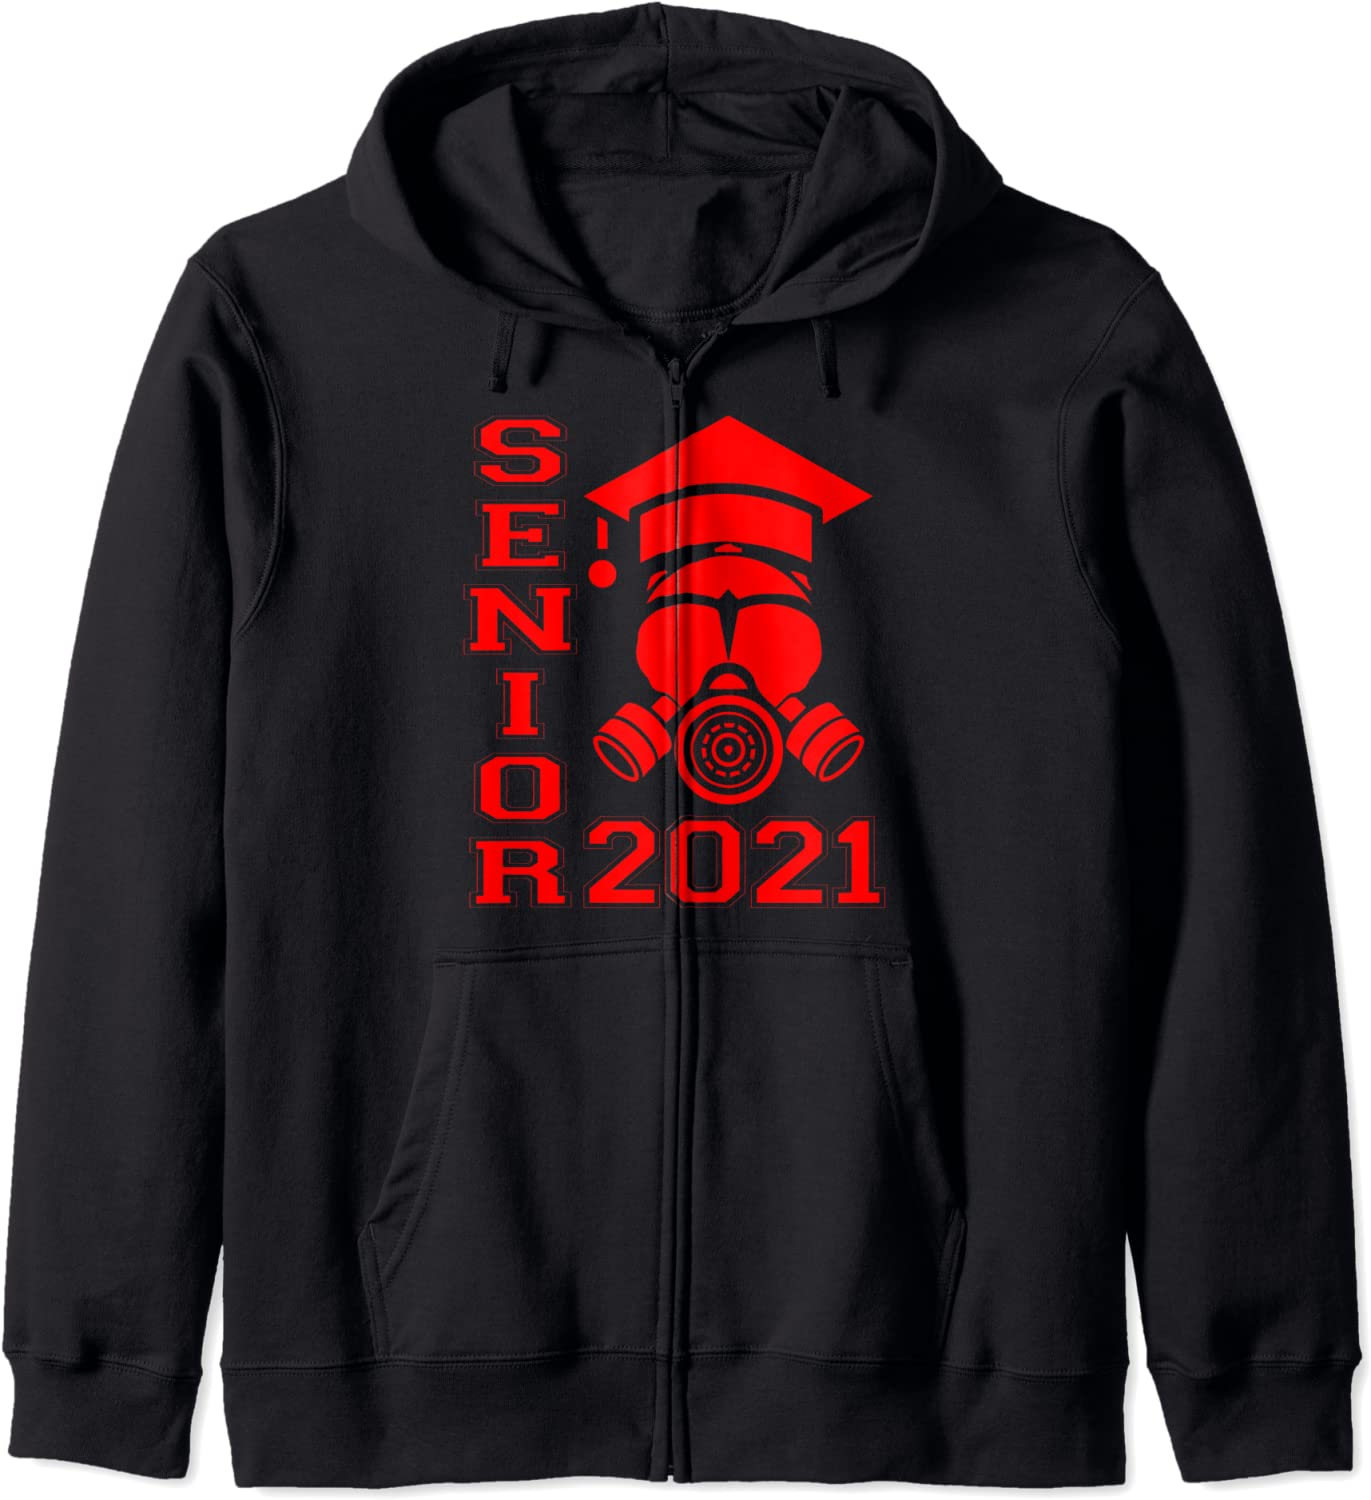 Senior 2021 Face Mask Quarantined Zip Limited time trial price Hoodie Max 47% OFF of Class